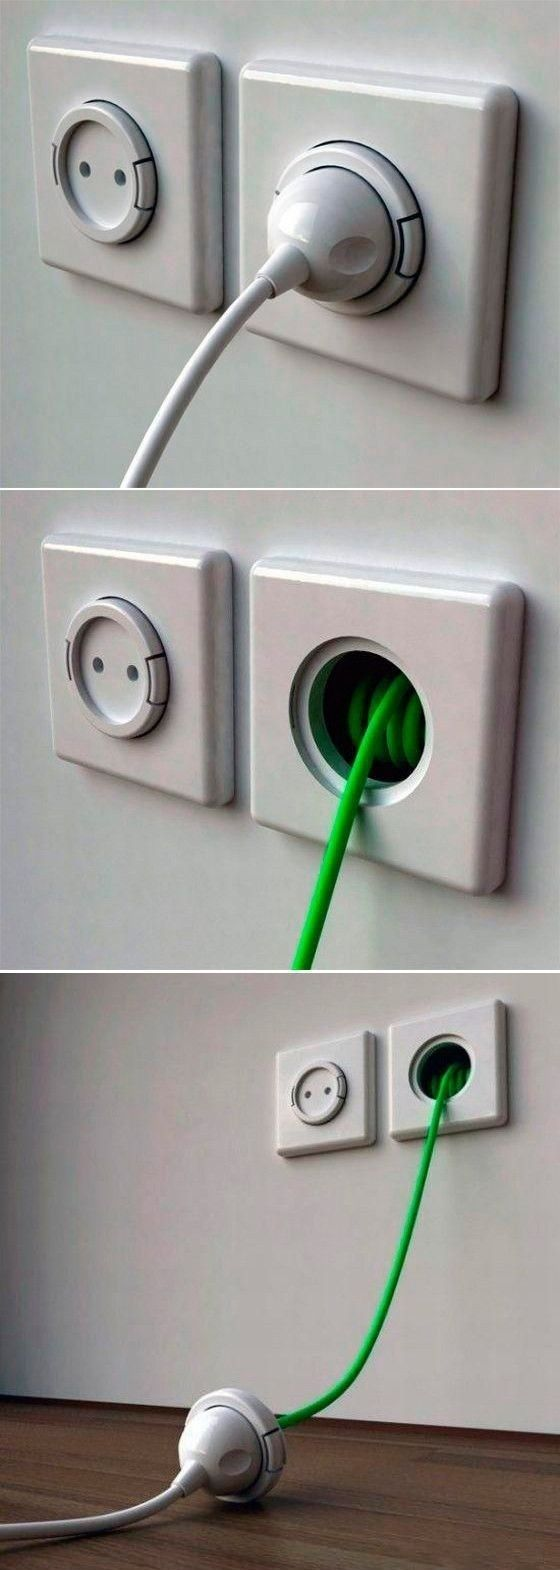 Electrical wall sockets with built-in extension cords.  -this is what i need!